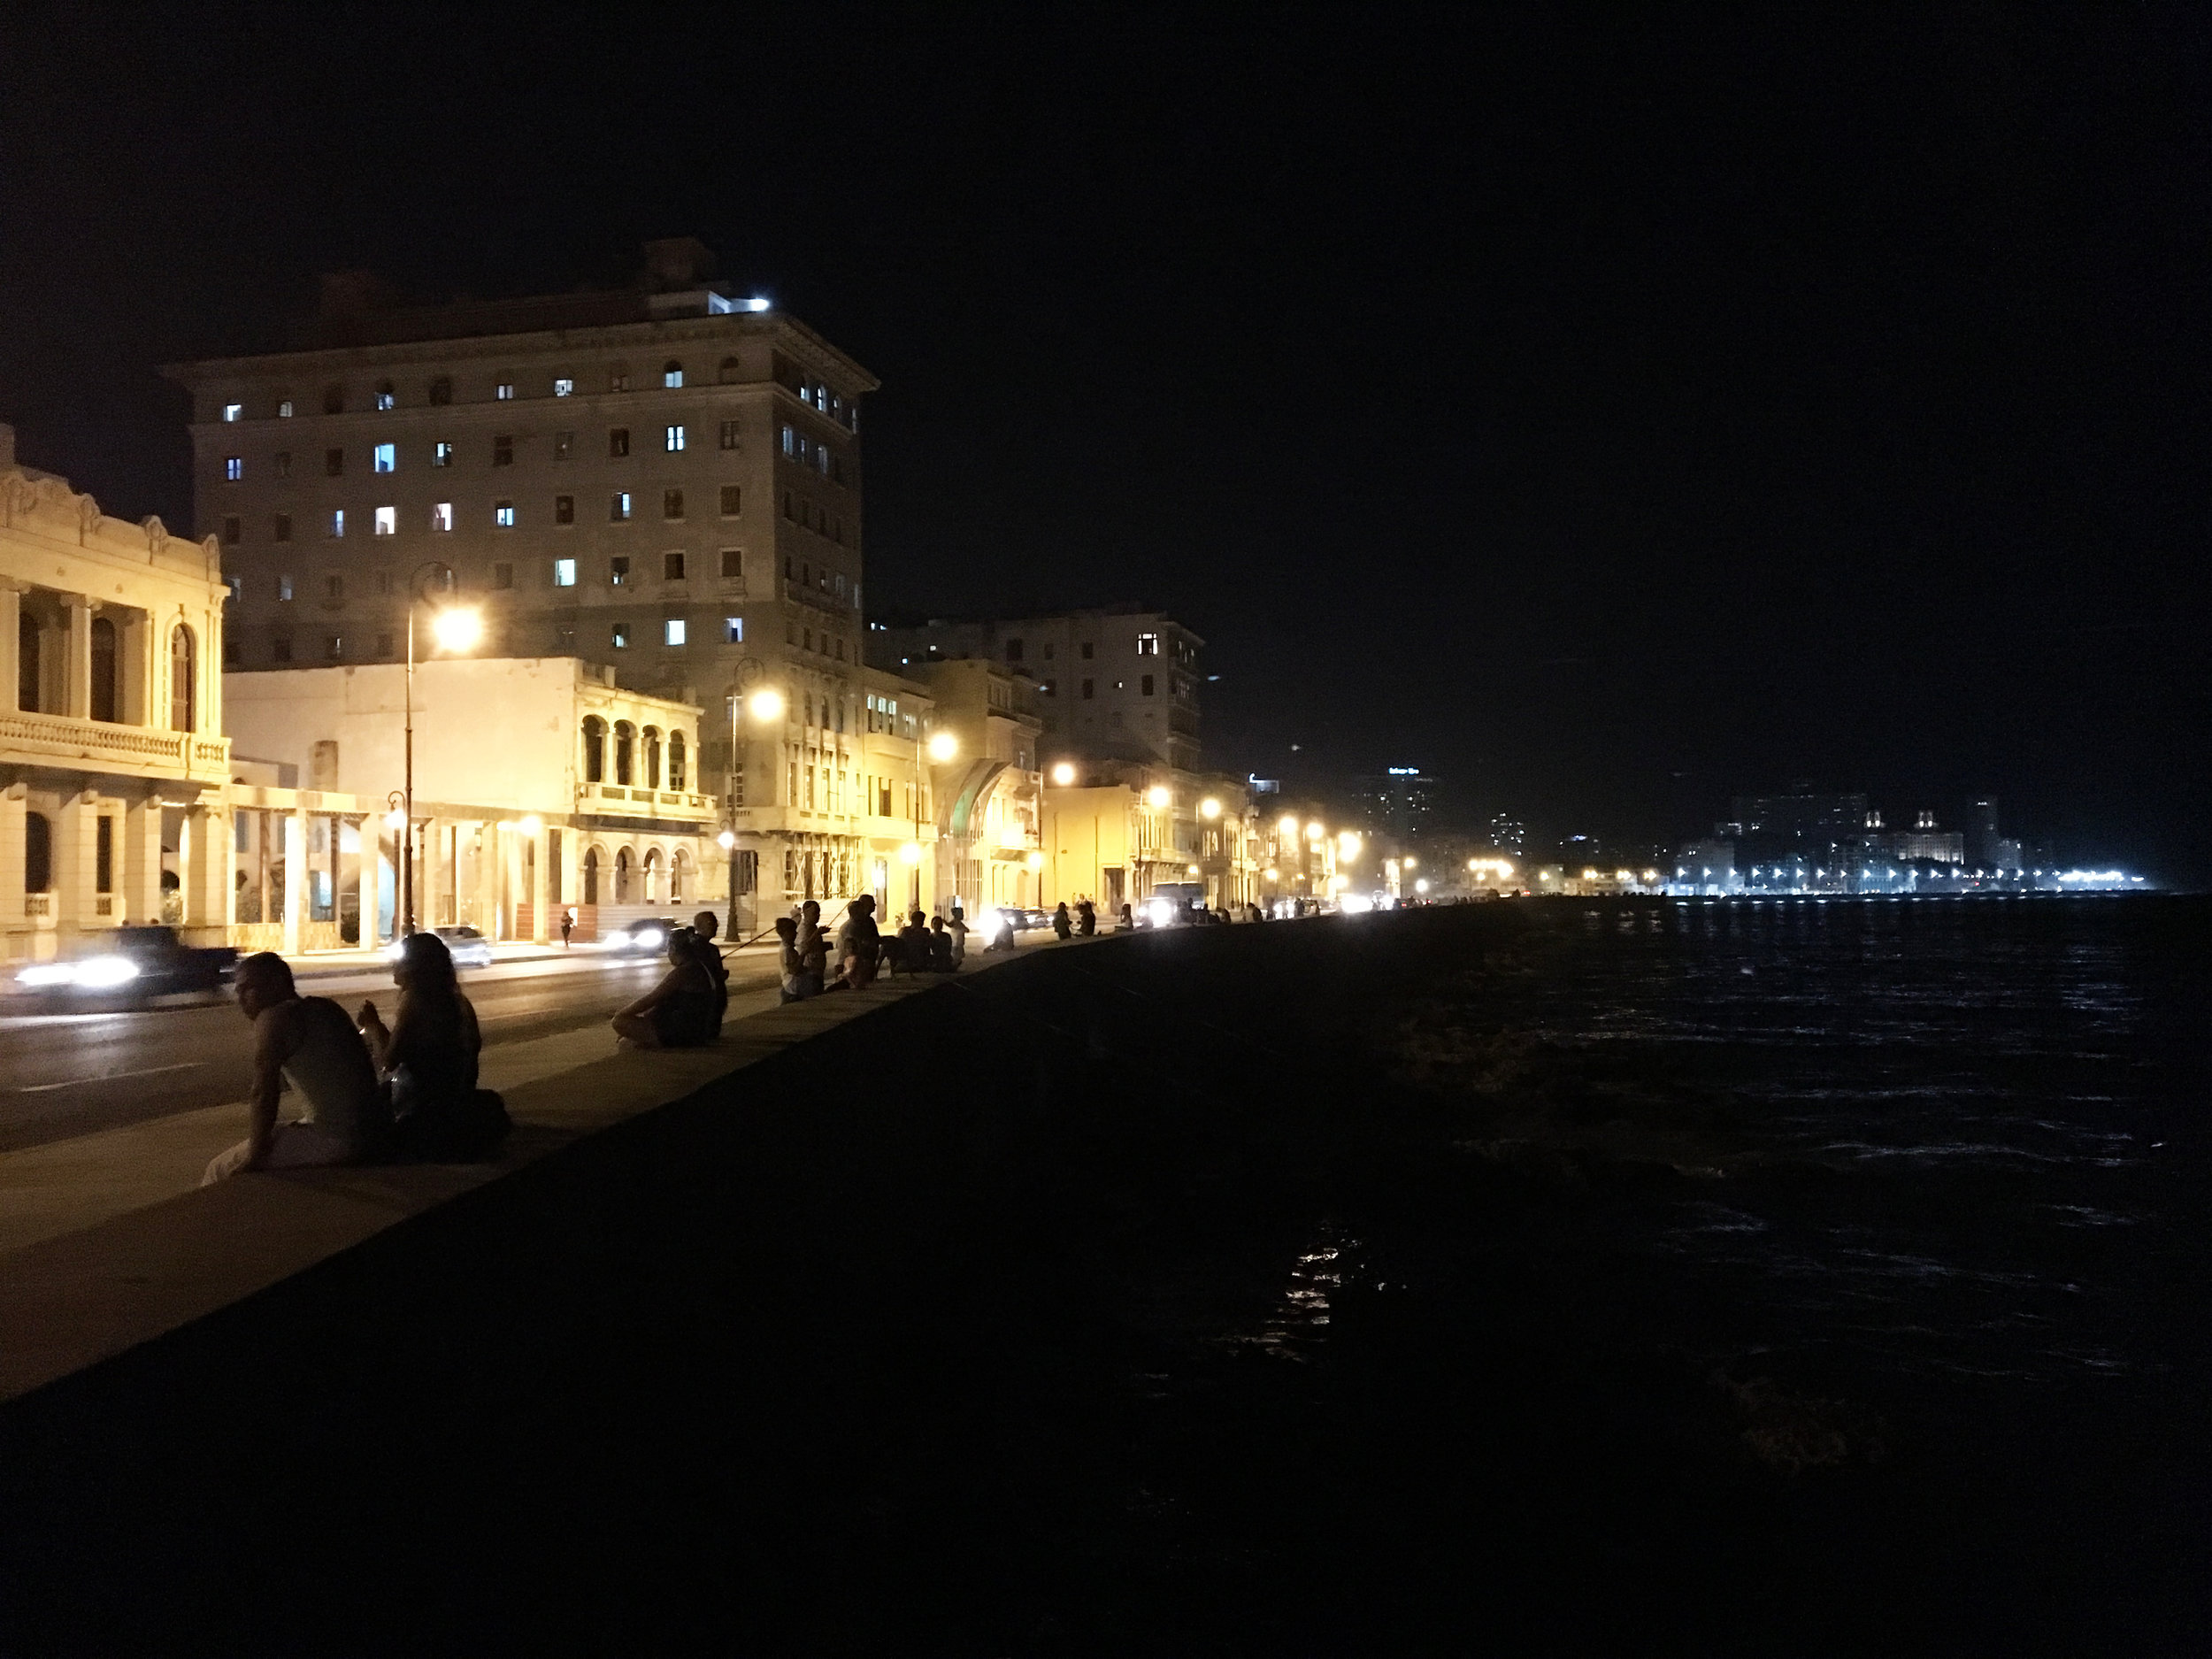 People hanging out on the Malecon in Havana at night